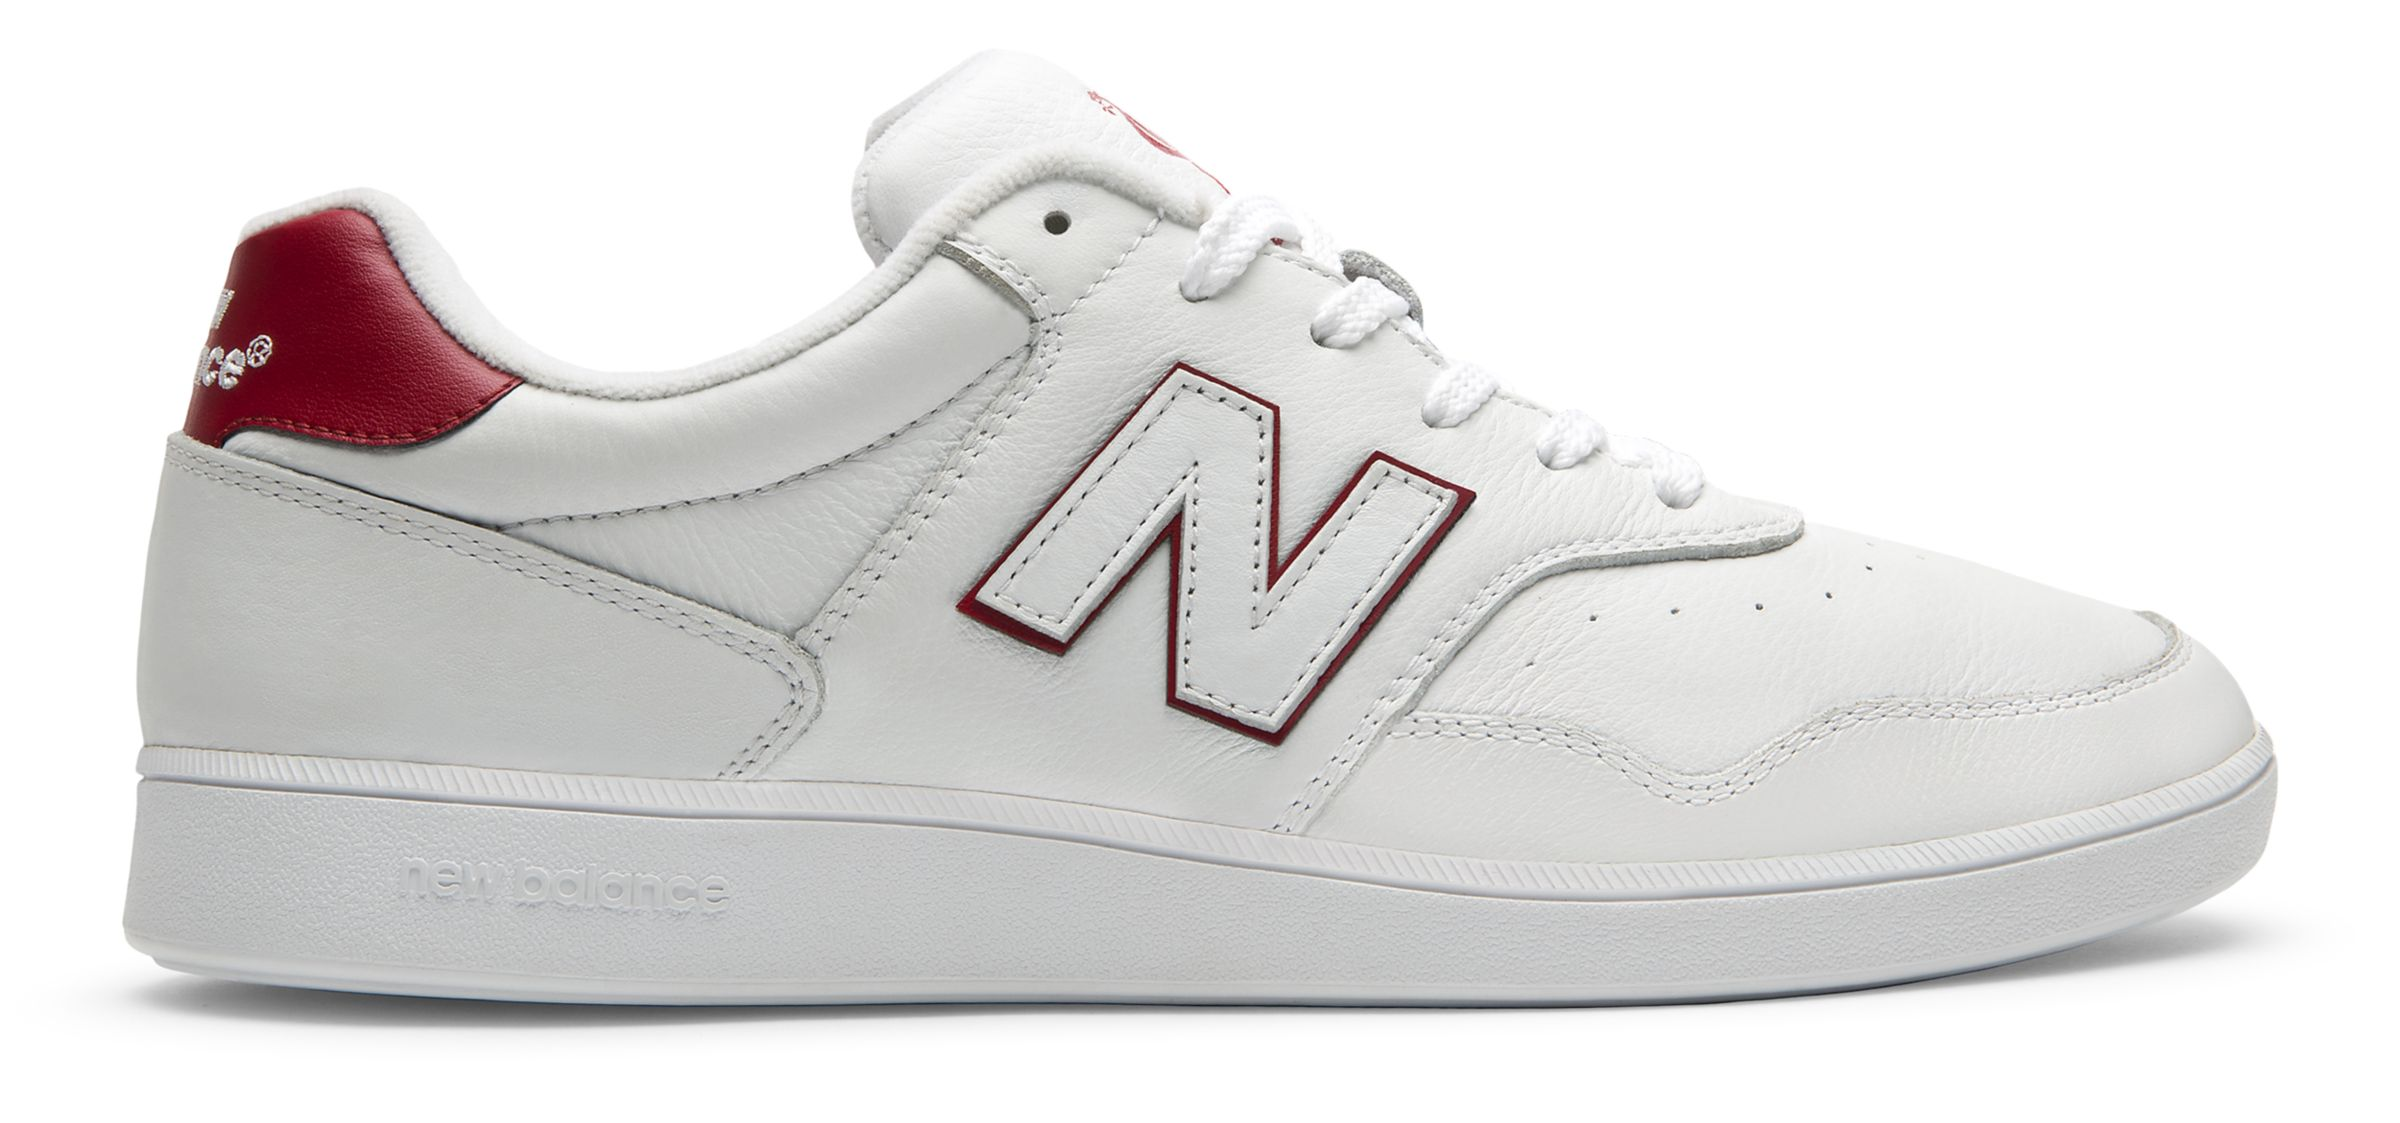 NB 288 New Balance, White with Red